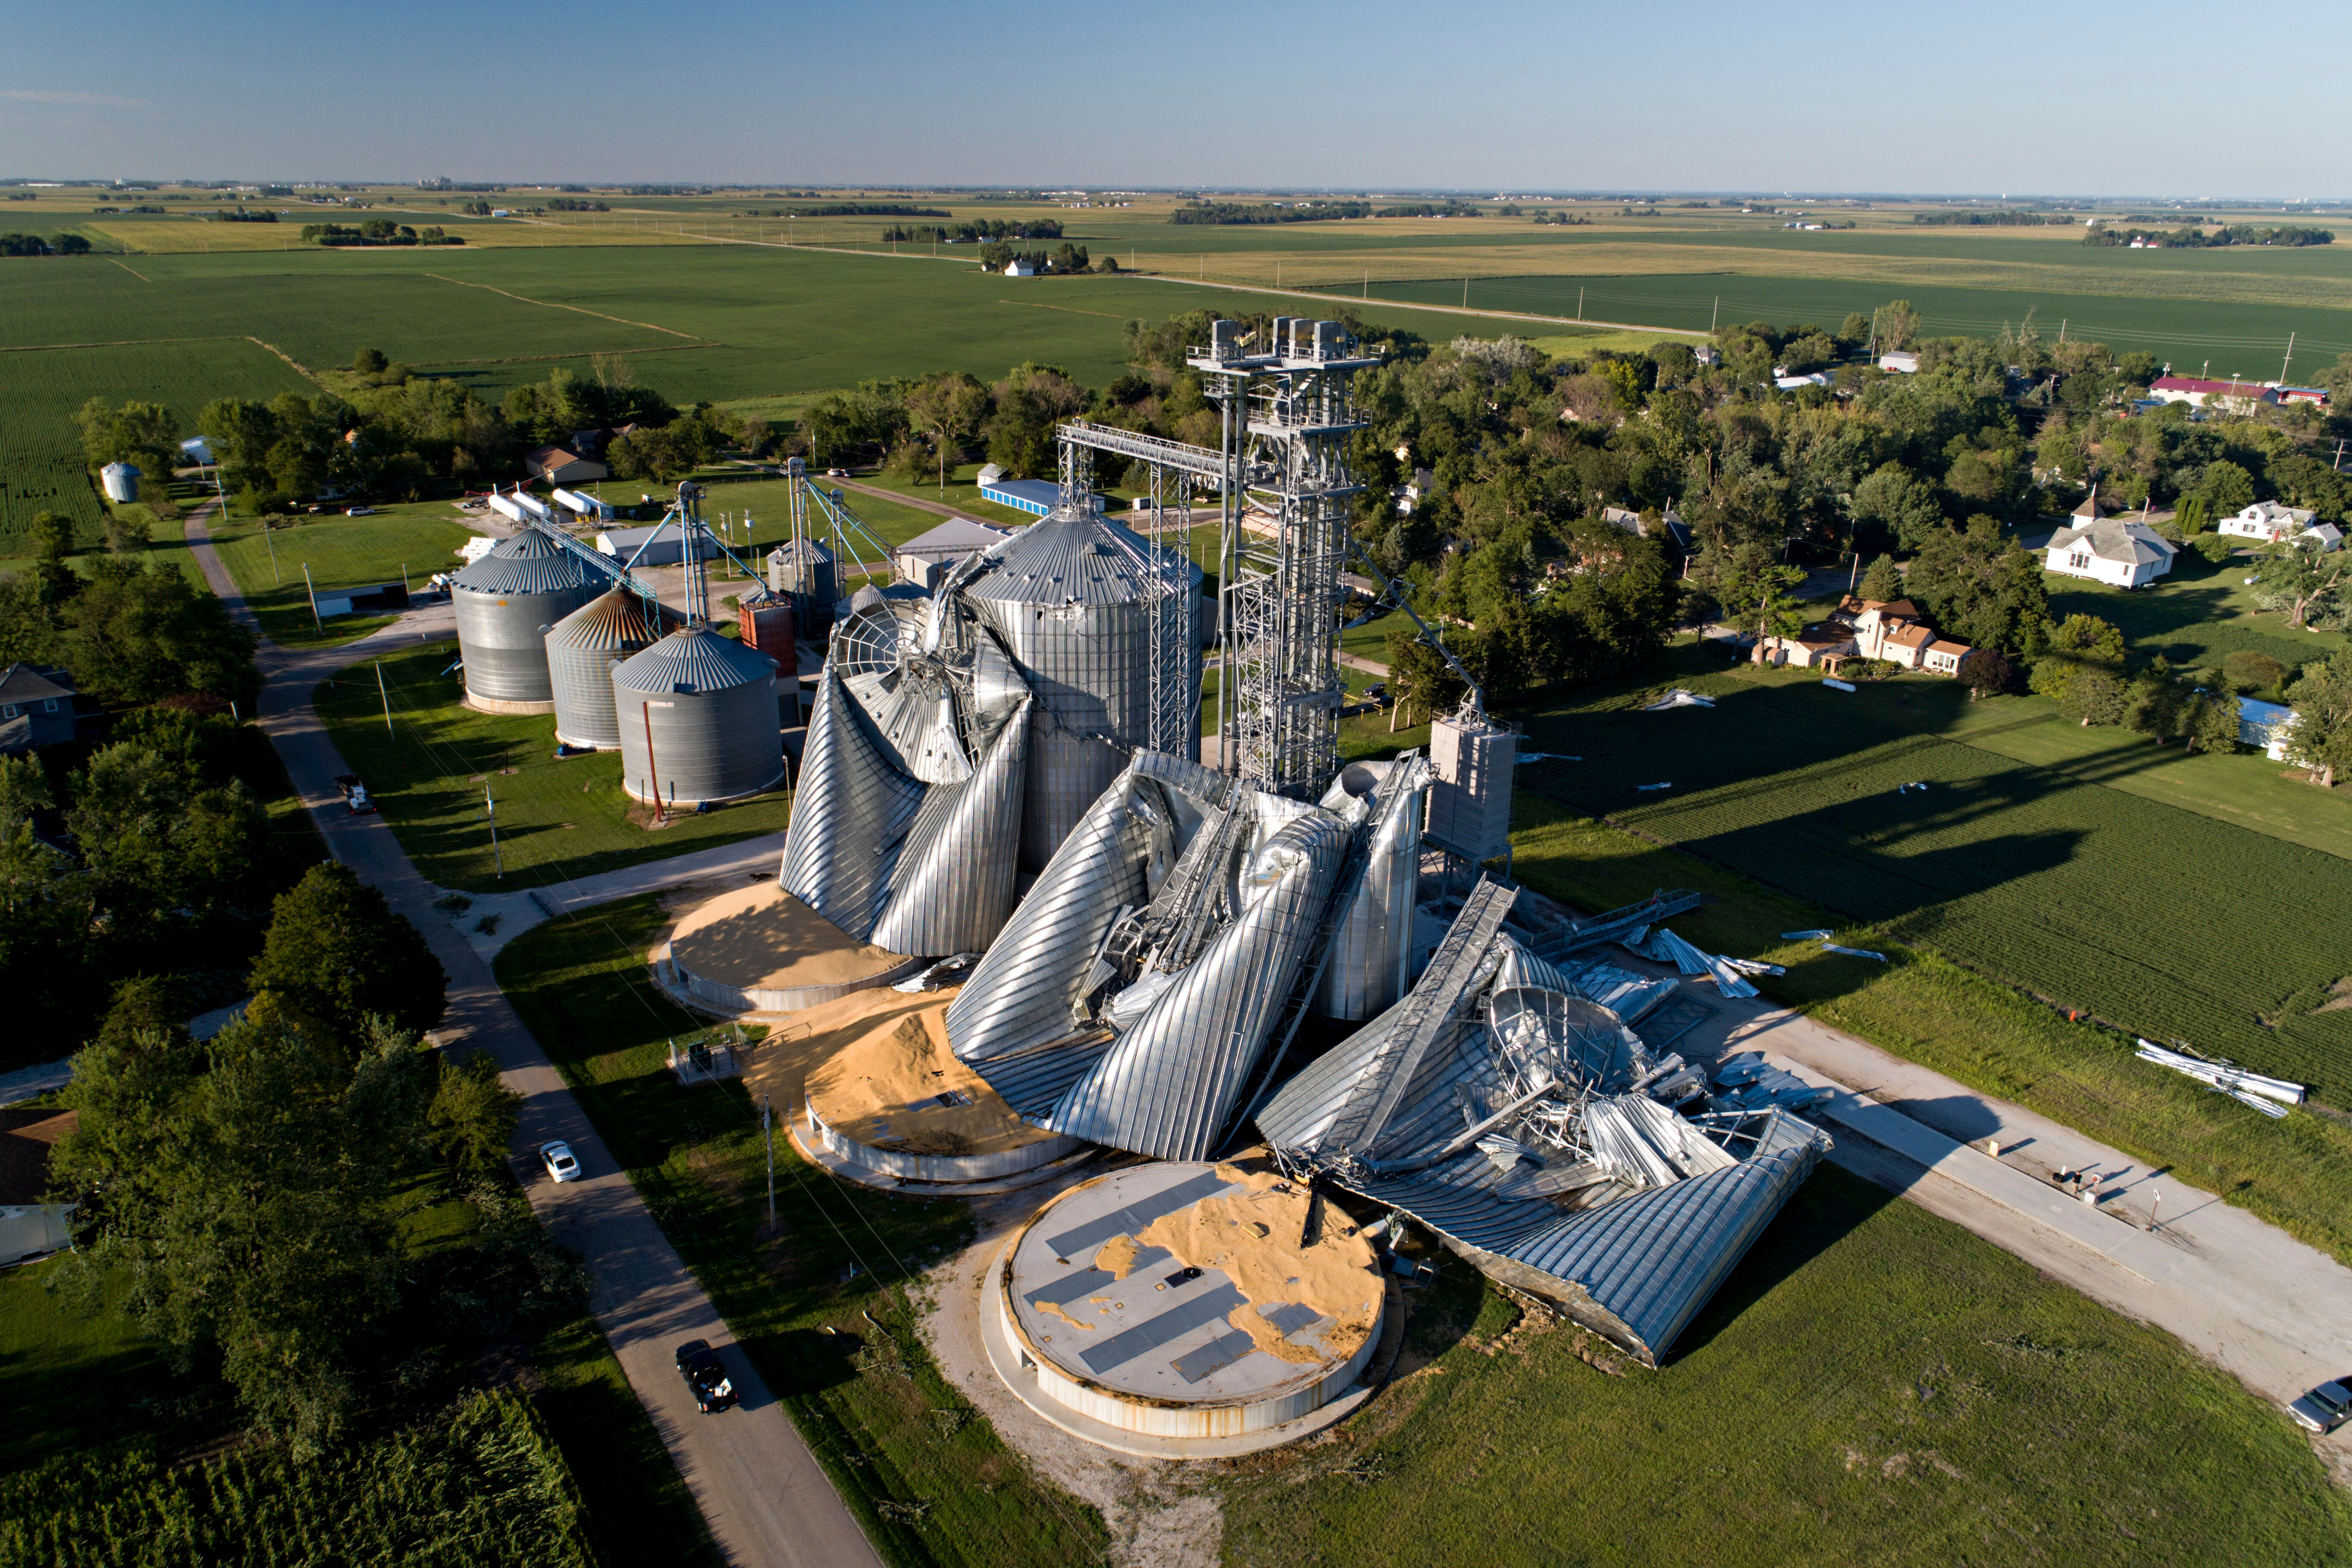 Damaged grain bins are shown at the Heartland Co-Op grain elevator on Aug. 11, in Luther, Iowa, after a powerful derecho batt